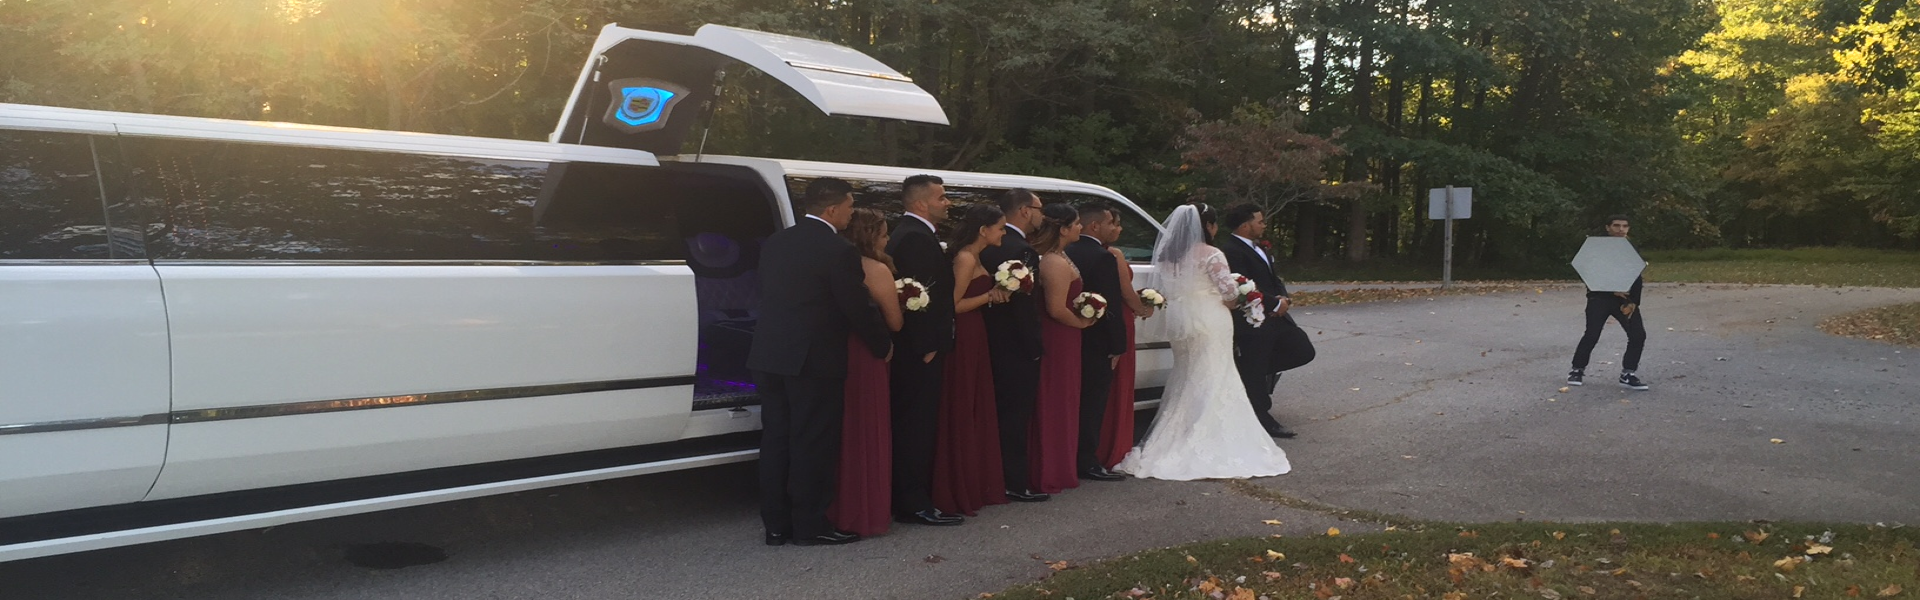 weddling picturial with a limousine